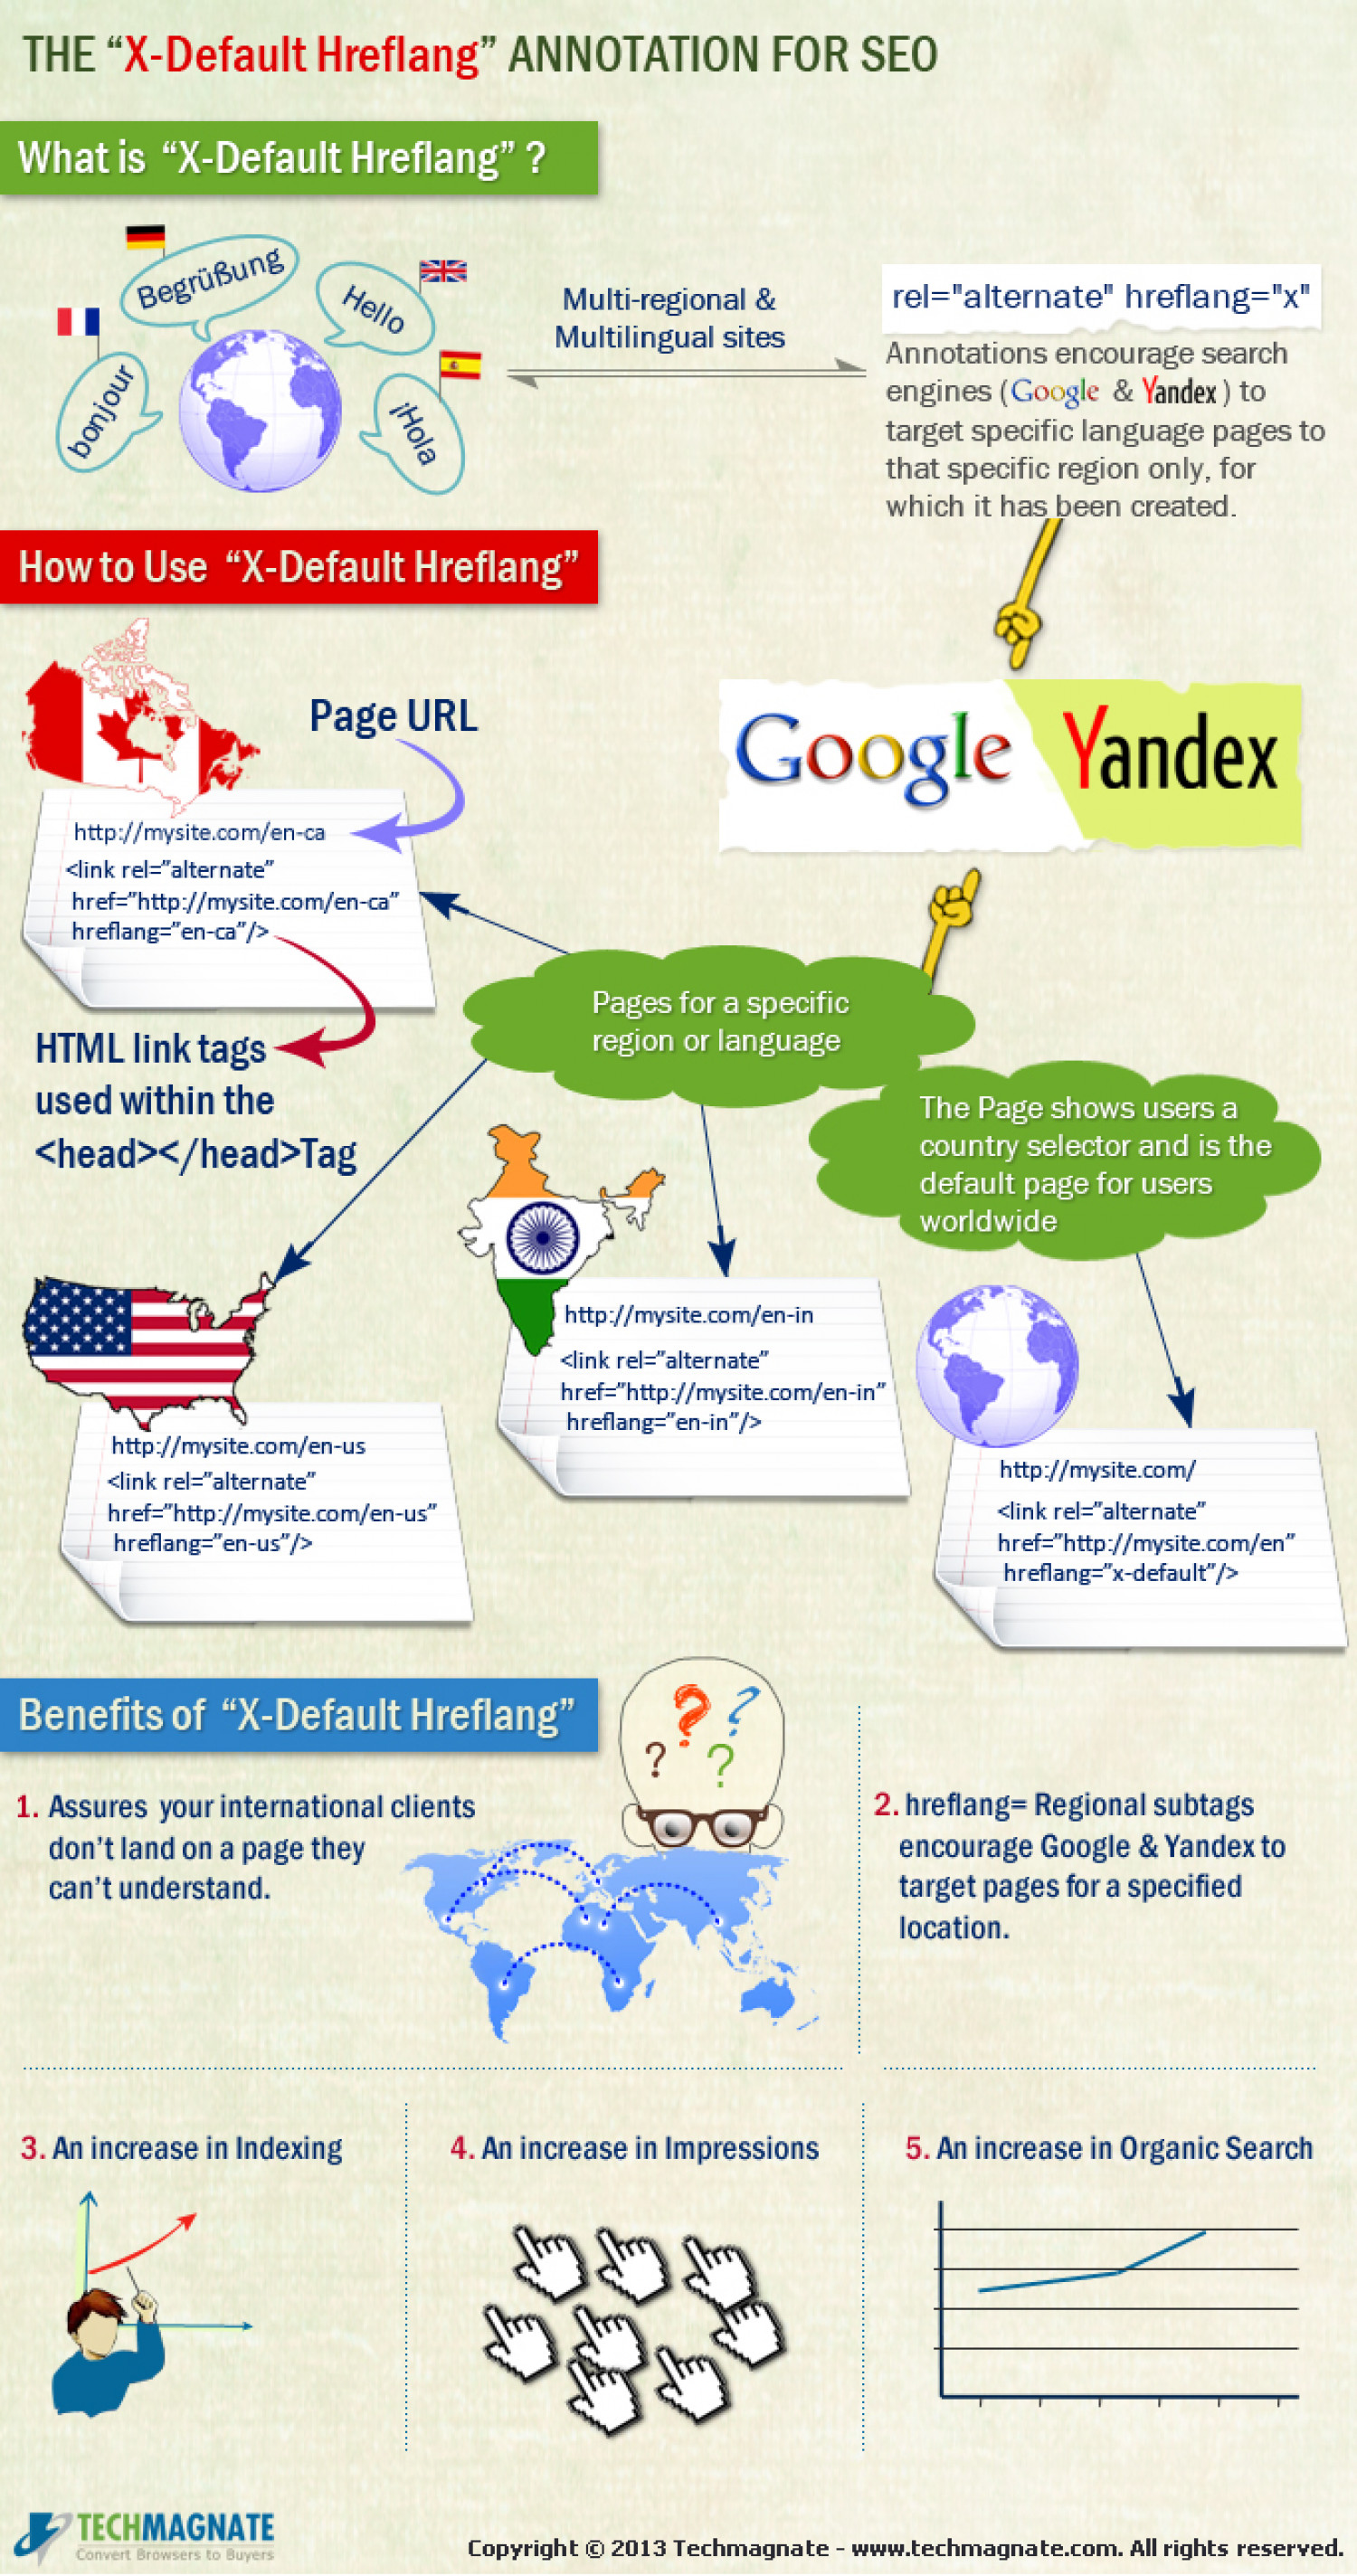 Why is The X-Default Hreflang Annotation Important for SEO? Infographic